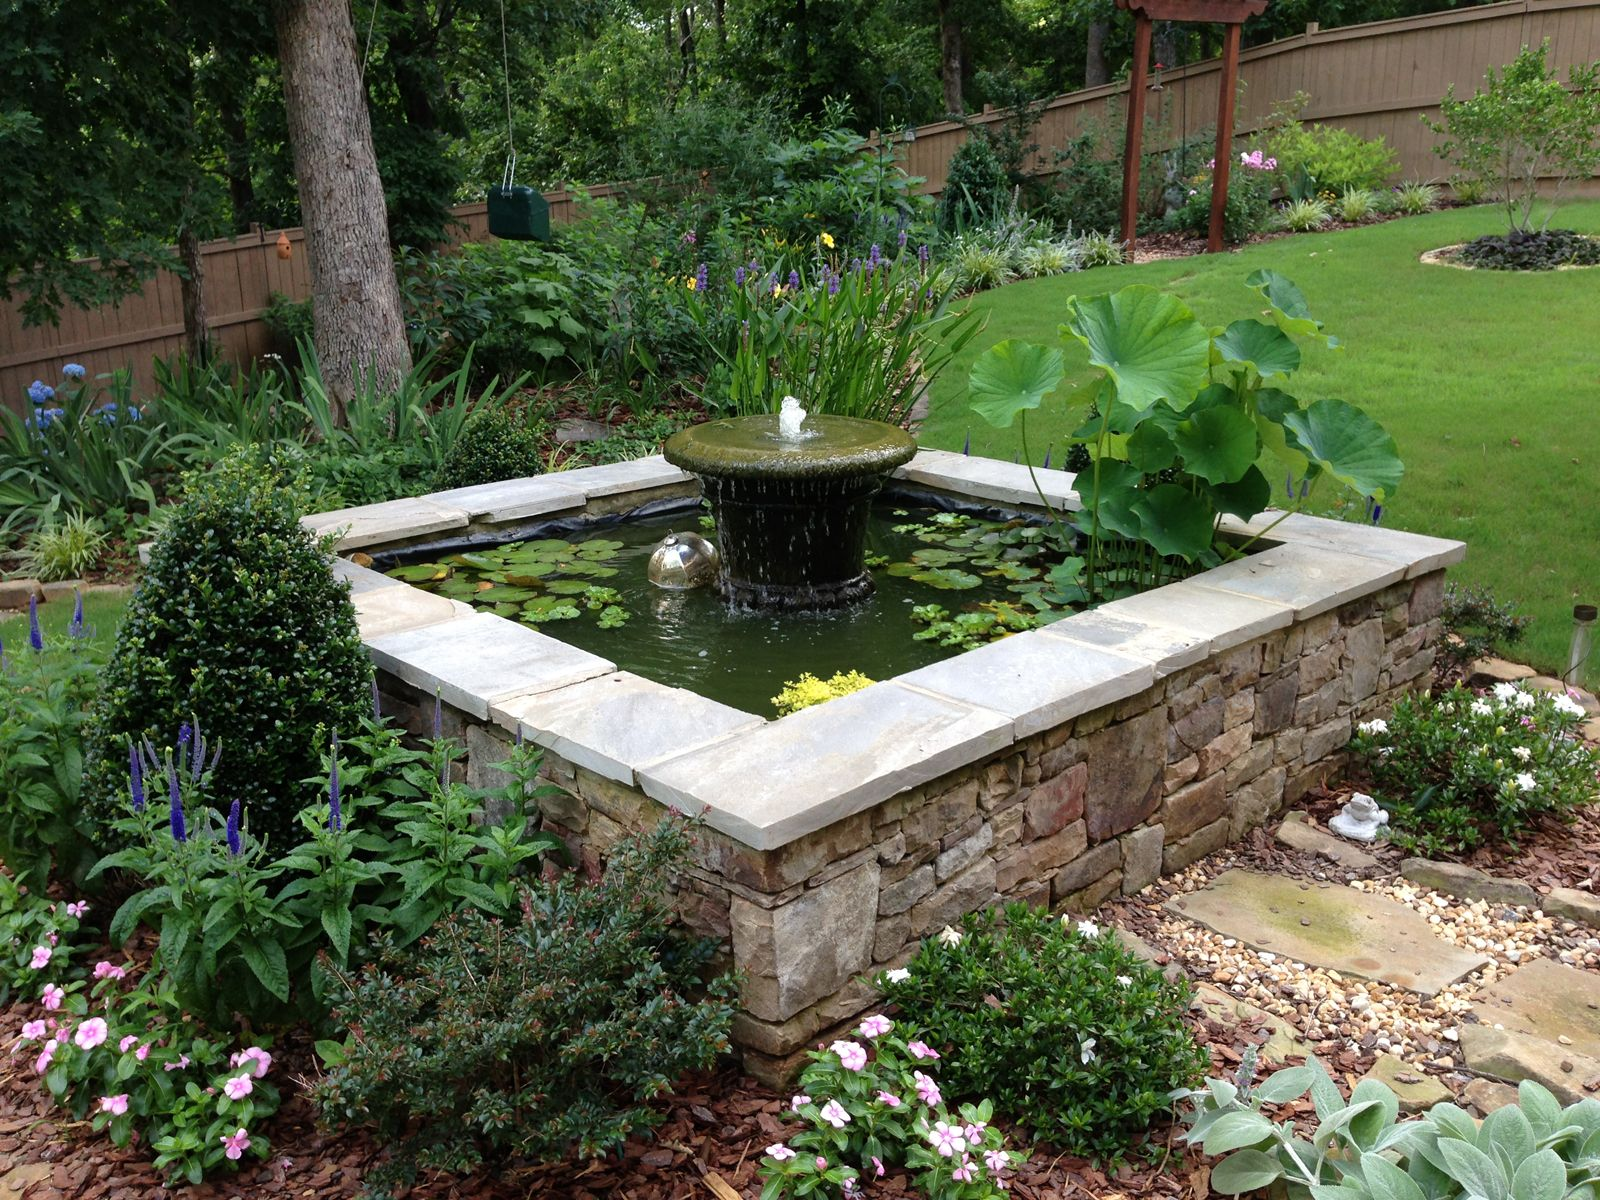 Square water pool carol bill 39 s garden in georgia for Pond and garden